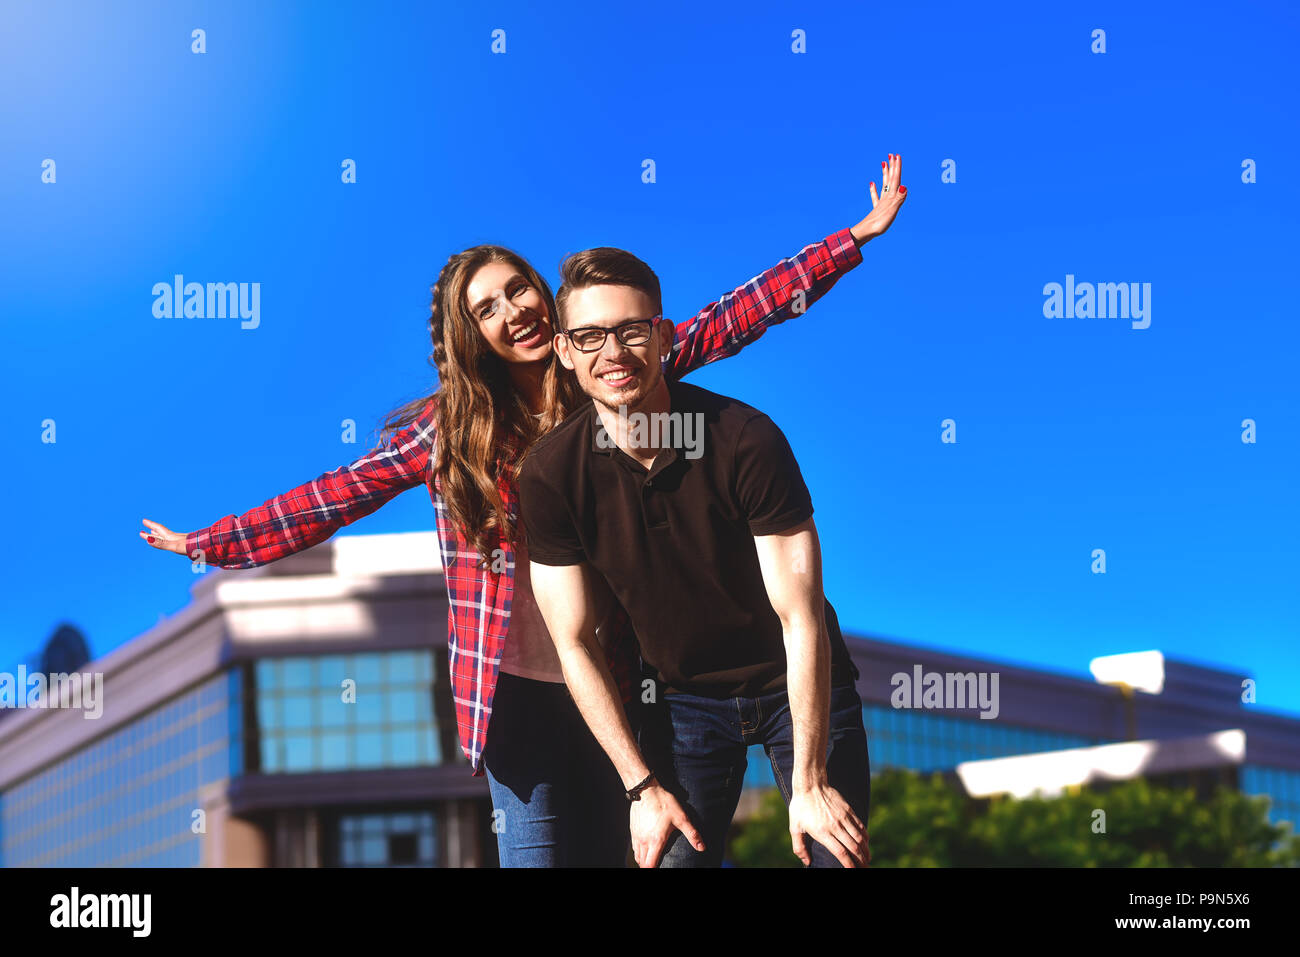 Outdoor shot of man giving woman piggyback. Man carrying woman oh his back - Stock Image